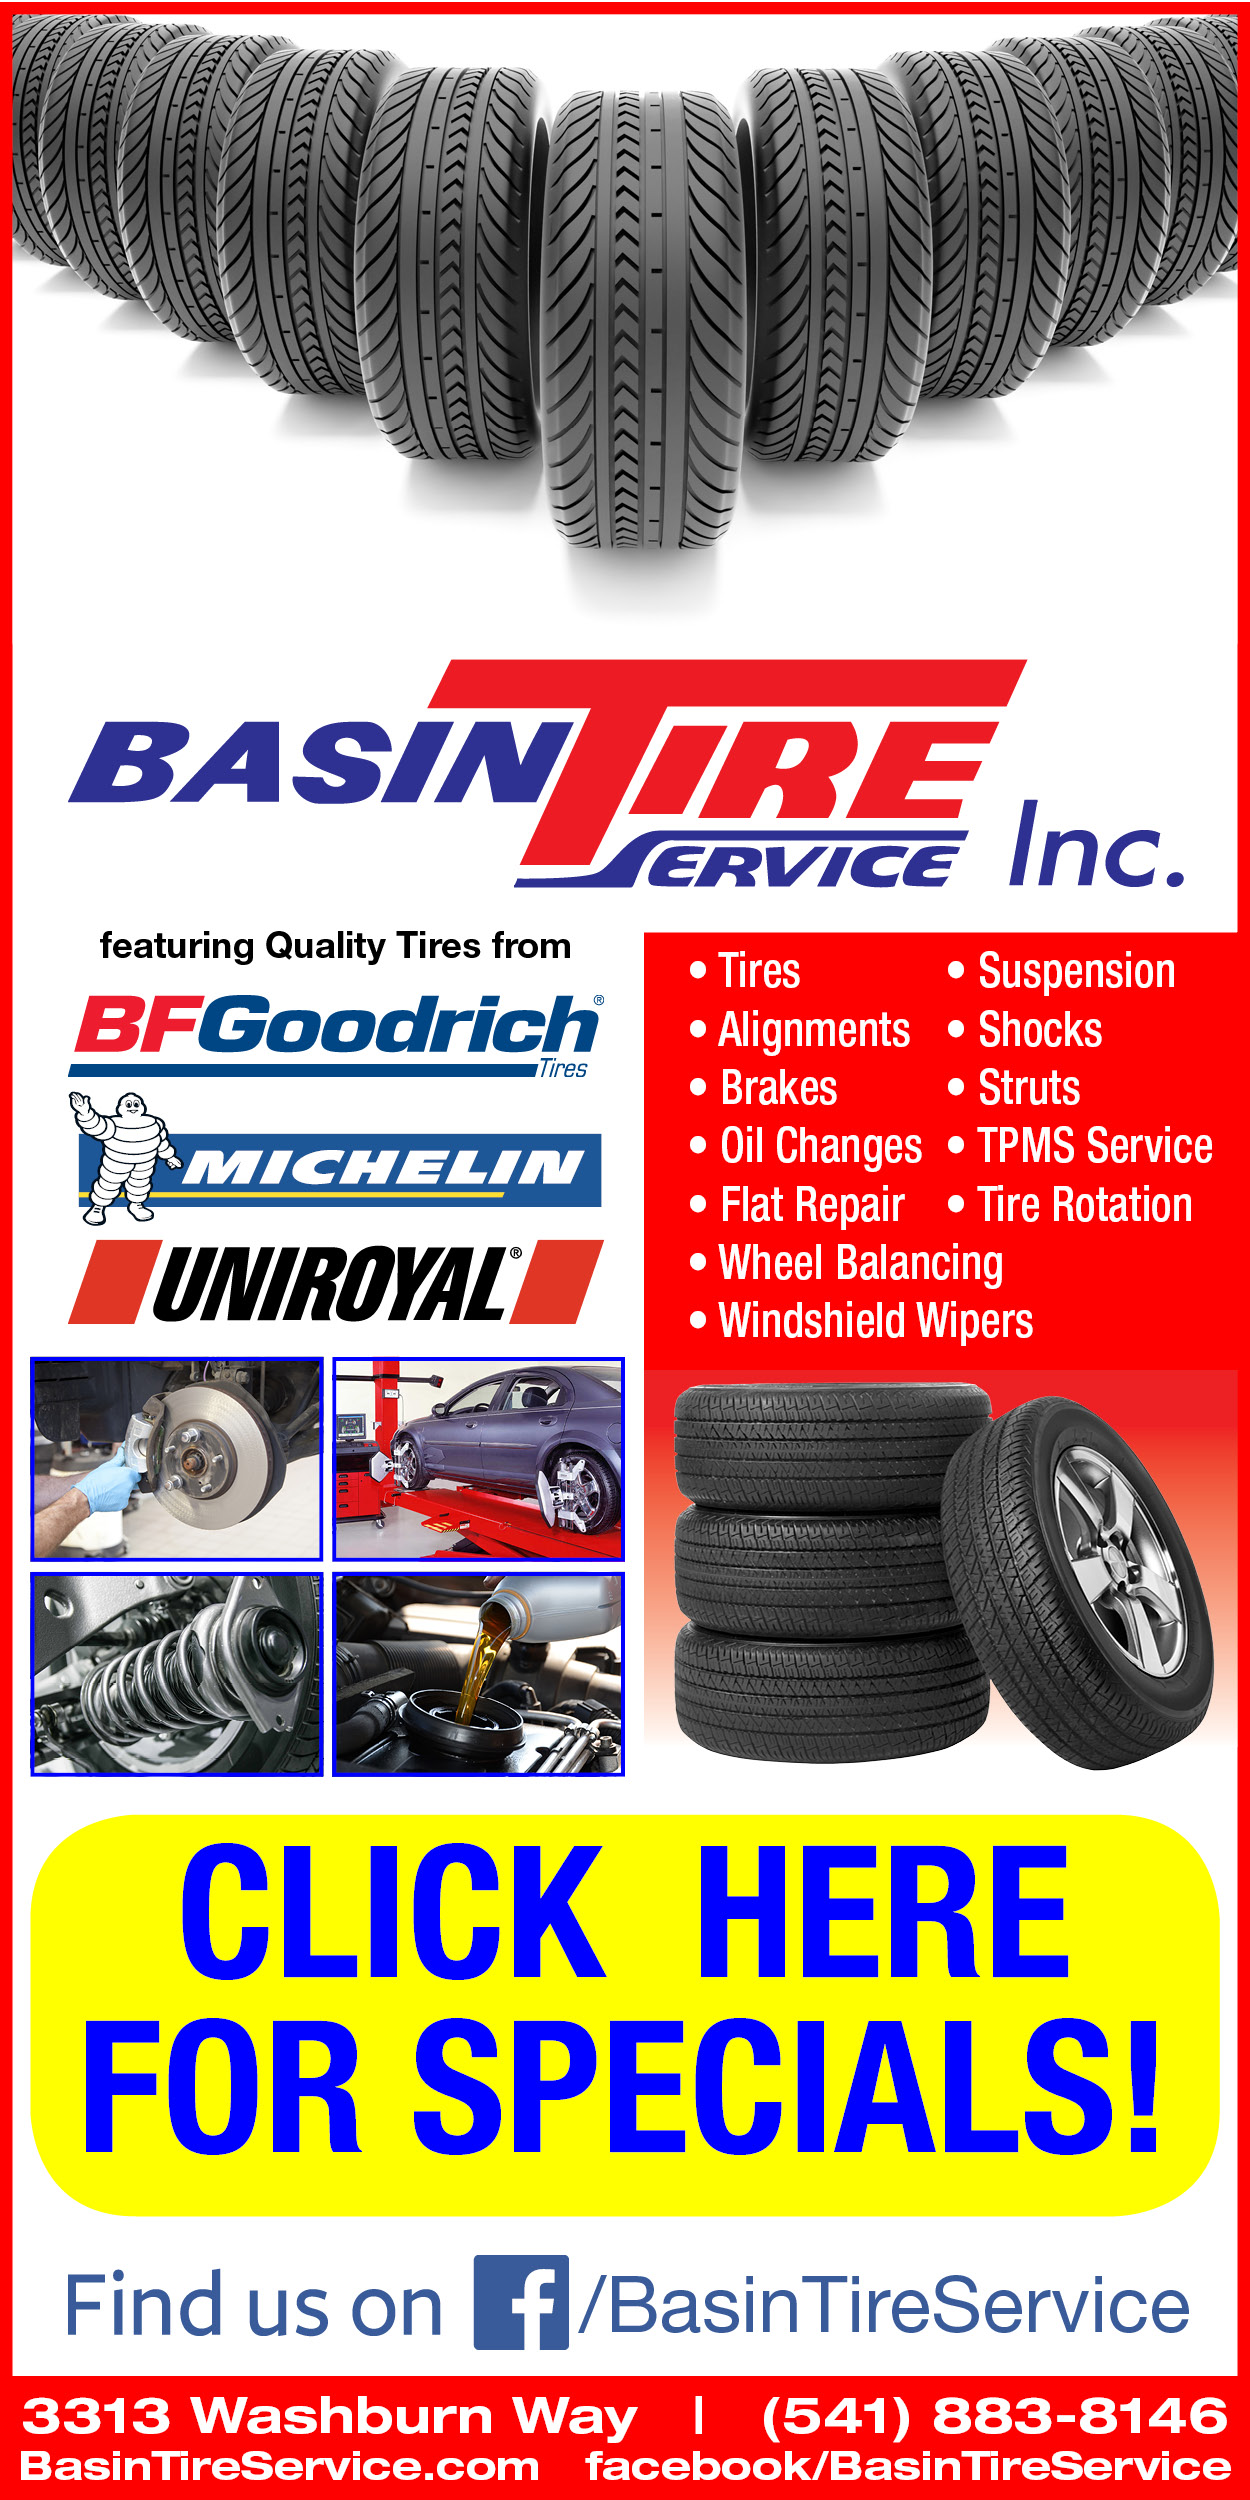 Auto Dealers Services Basin Life